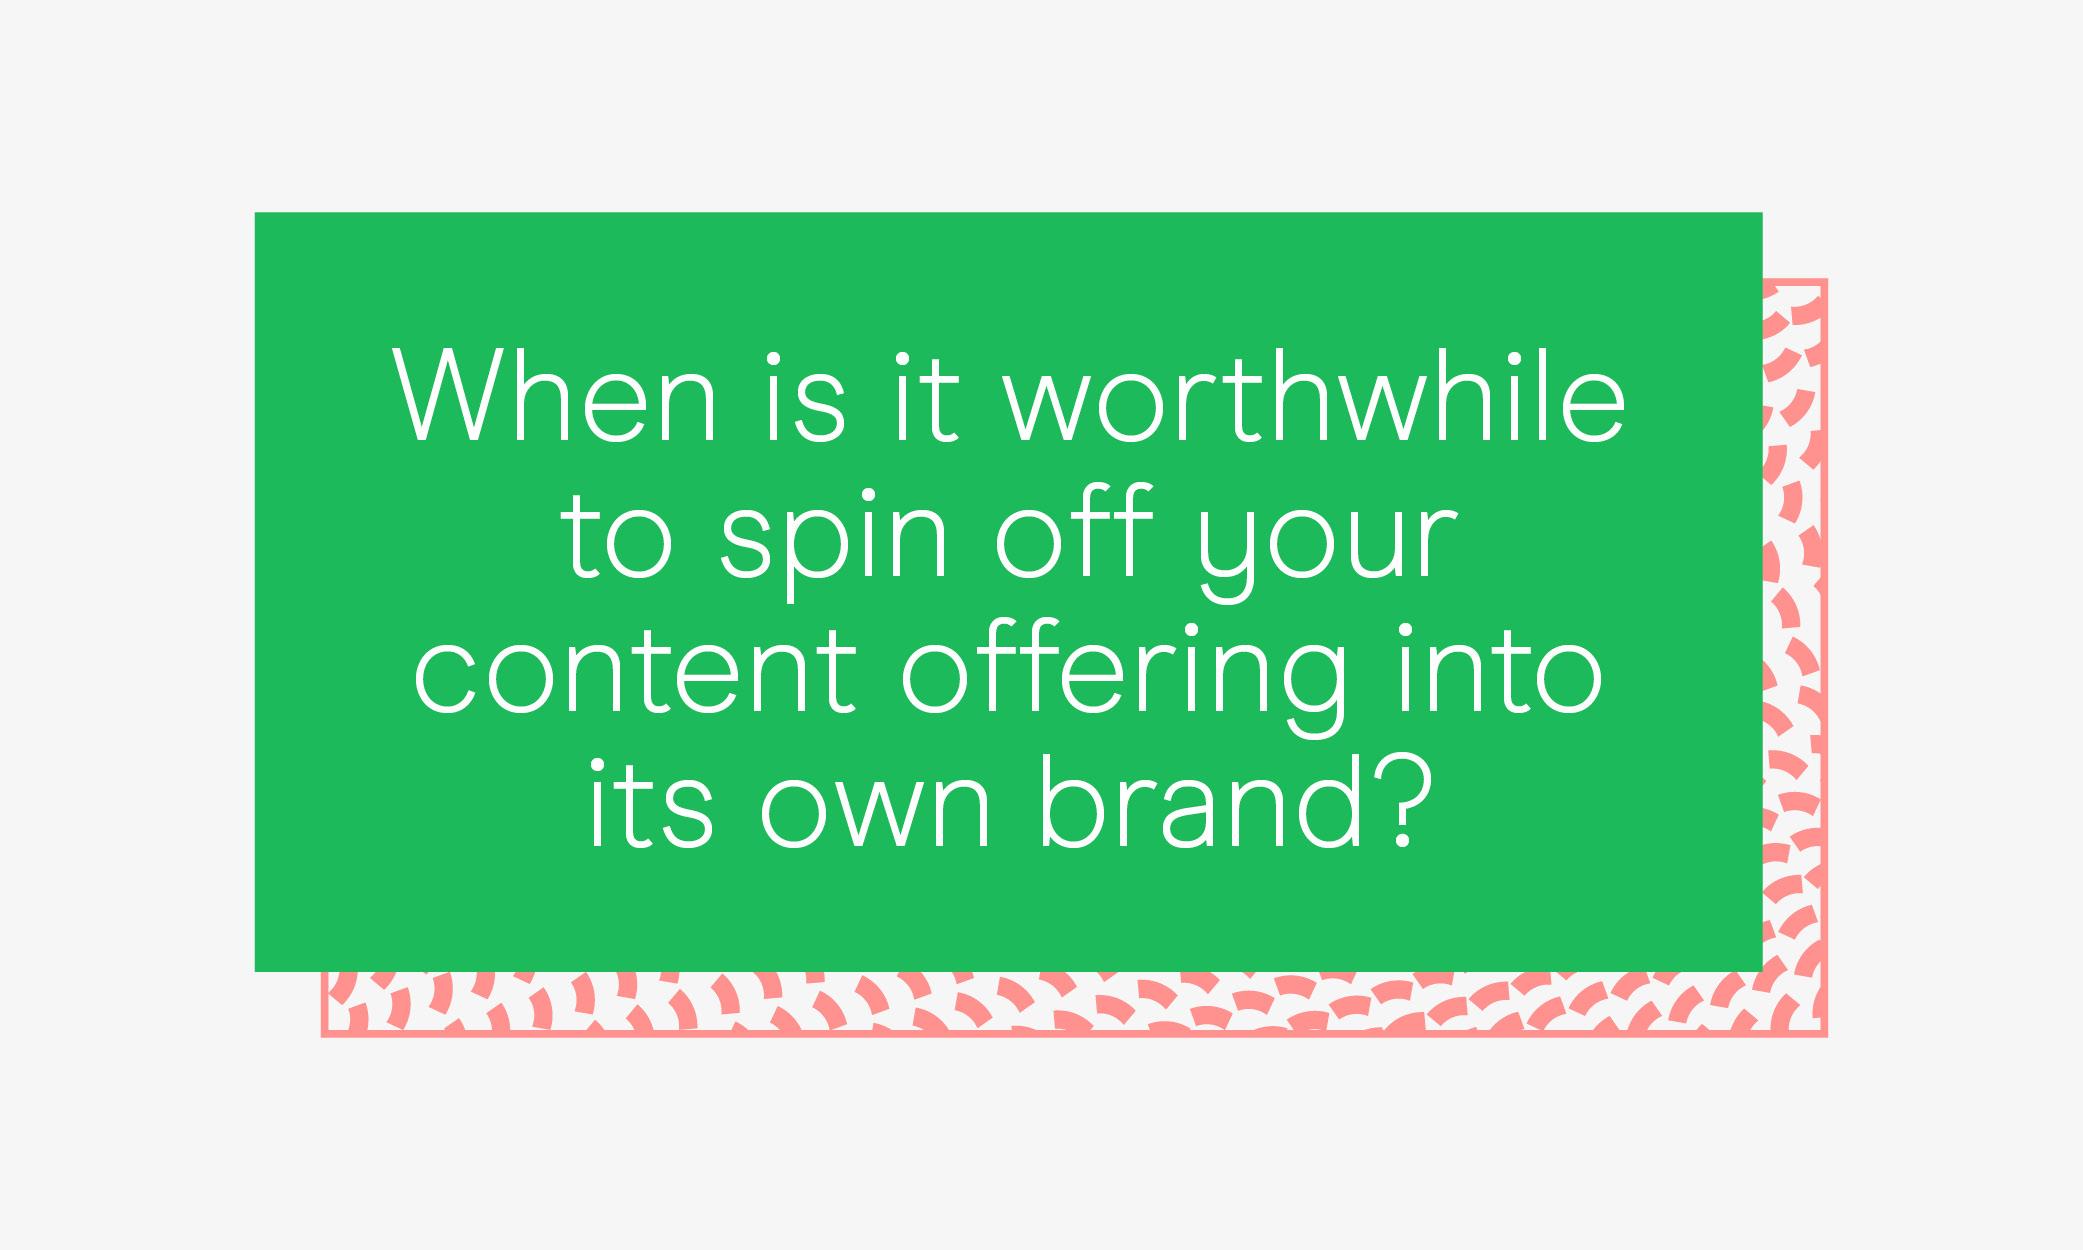 When is it worthwhile to spin off your content offering into its own brand?